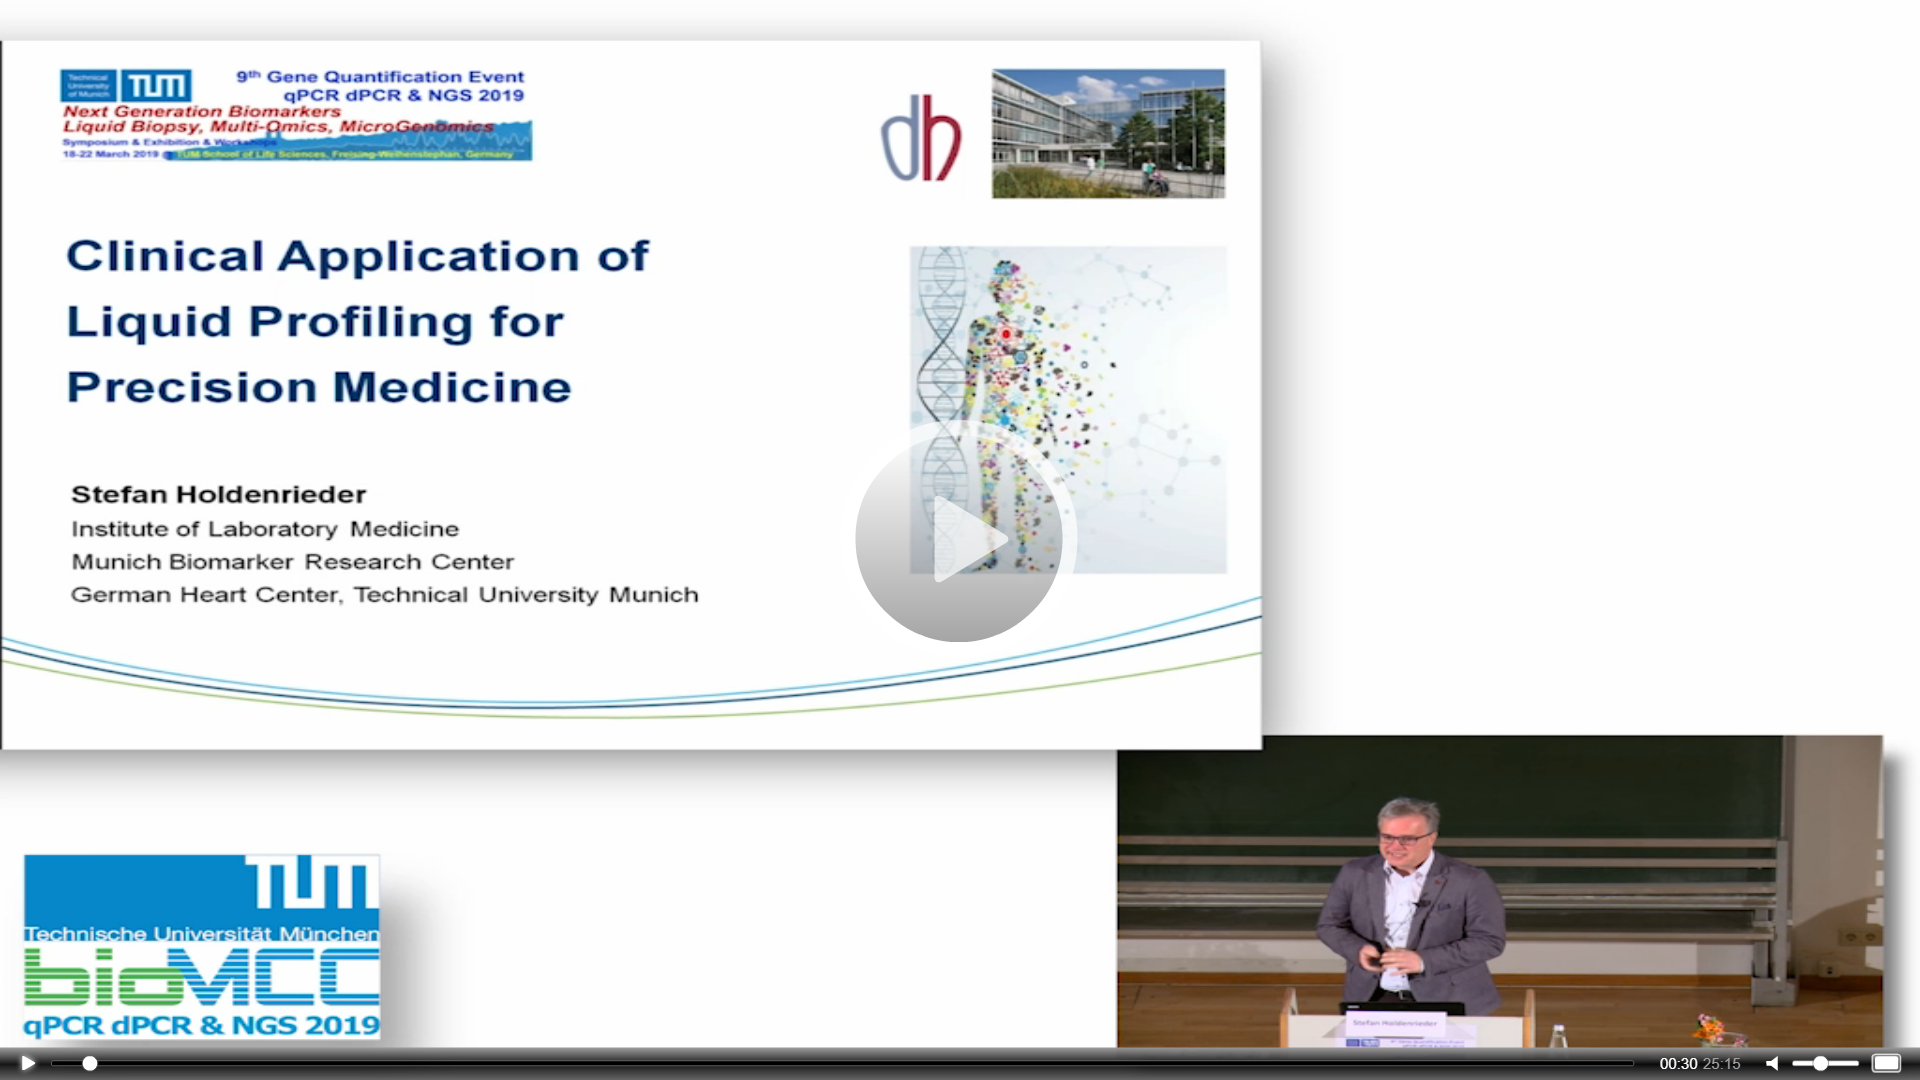 Clinical Application of Liquid Profiling for Precision Medicine